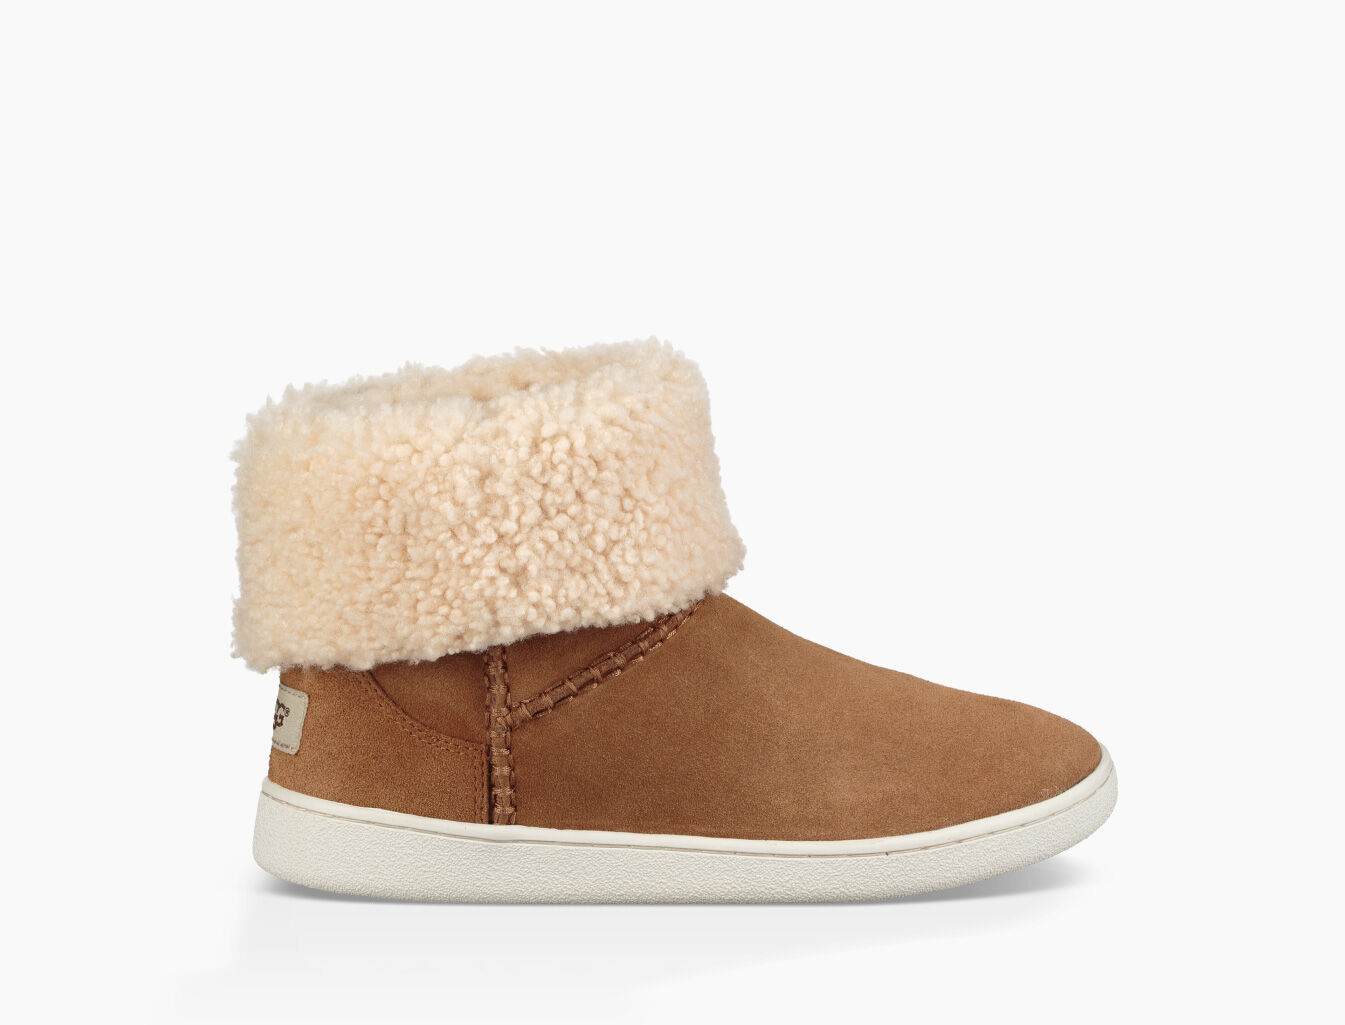 Mika Classic UGG Sneaker Boots | UGG